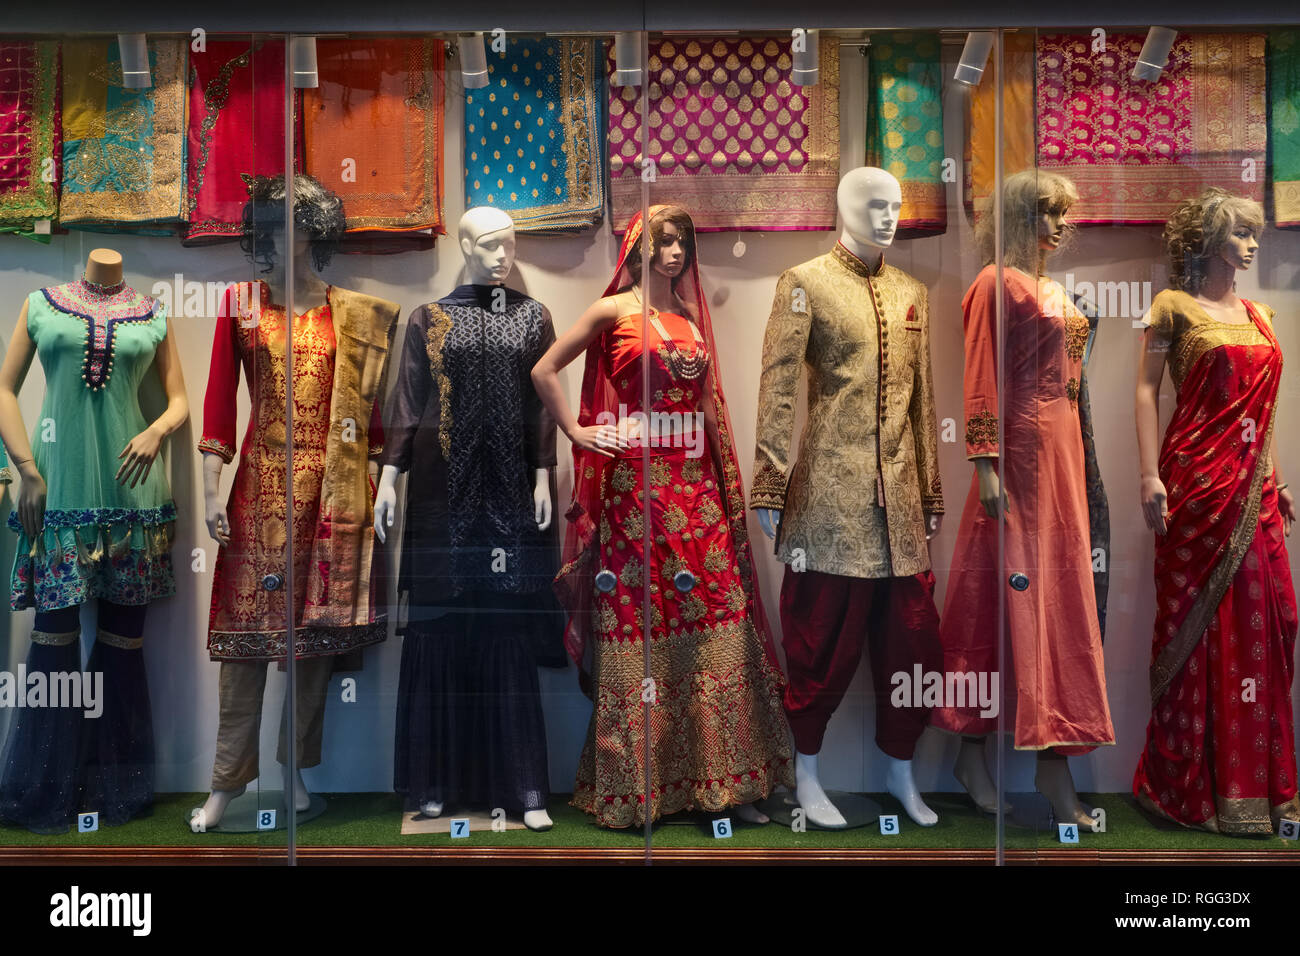 772f4358b2 A shop window in Little India area, Singapore, displays ethnic Indian  fashion - Stock